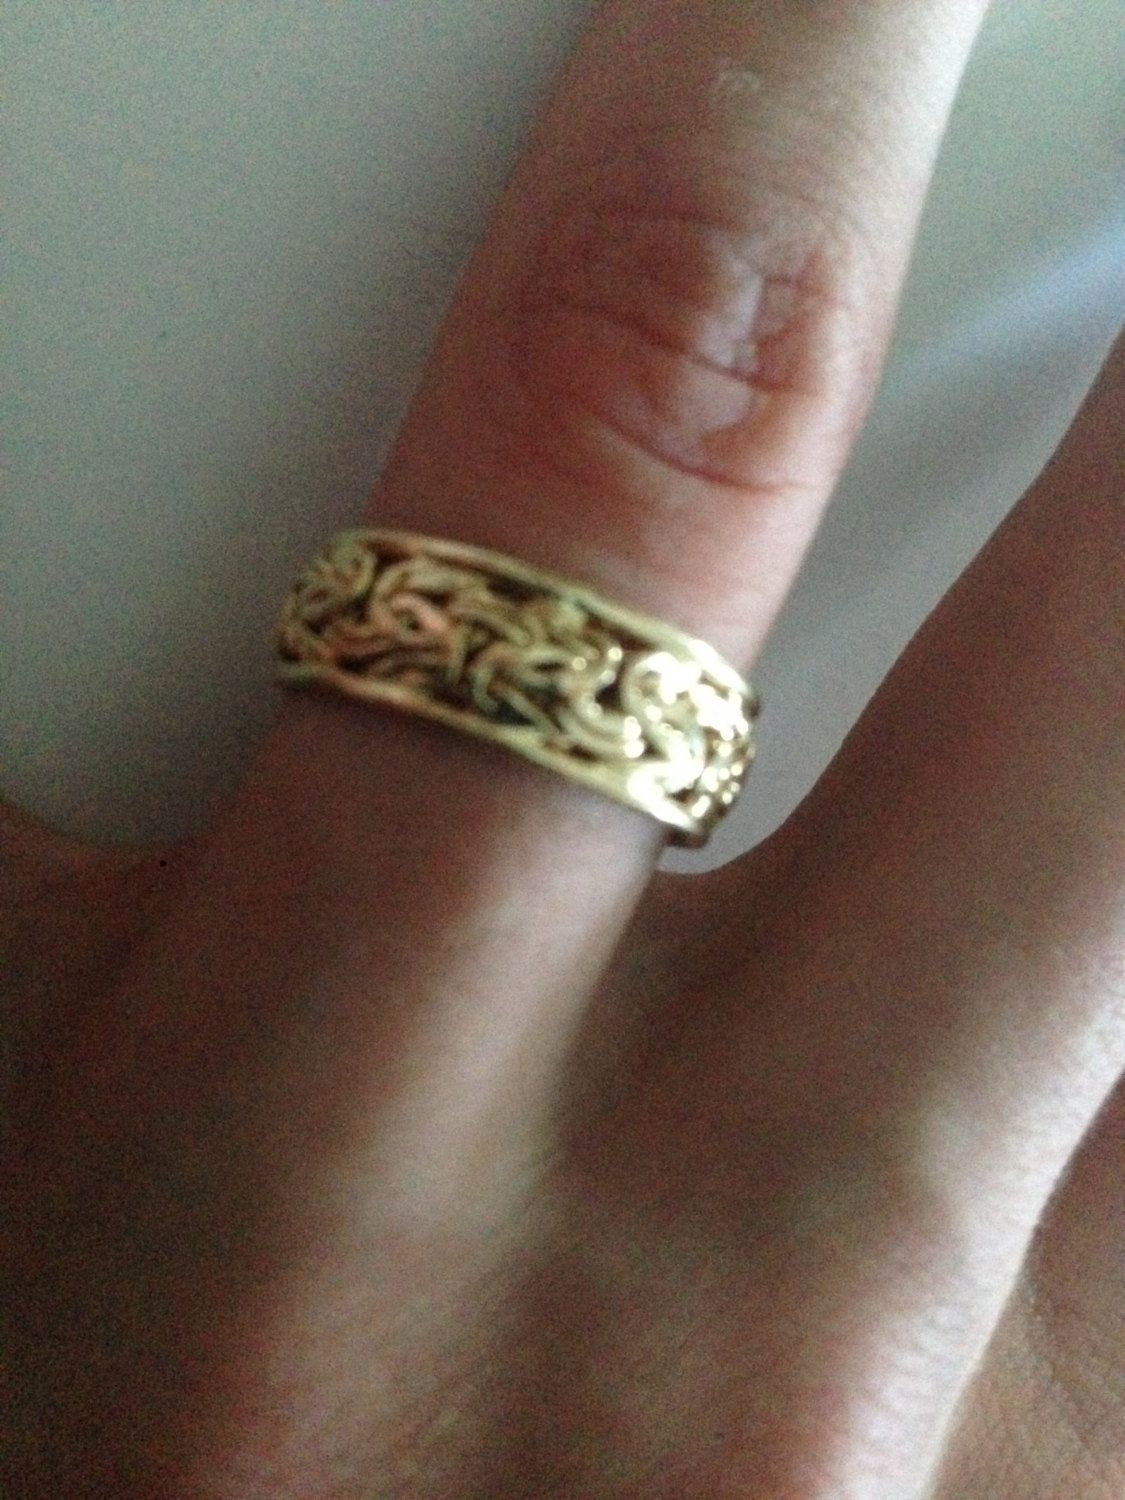 Beautiful Vintage Designer 14K Yellow Gold Byzantine Sz 6.5, Ring by Atasay Kuyumculuck Signed AK 14K Turkey by BlackPearlVintage on Etsy https://www.etsy.com/listing/265298773/beautiful-vintage-designer-14k-yellow